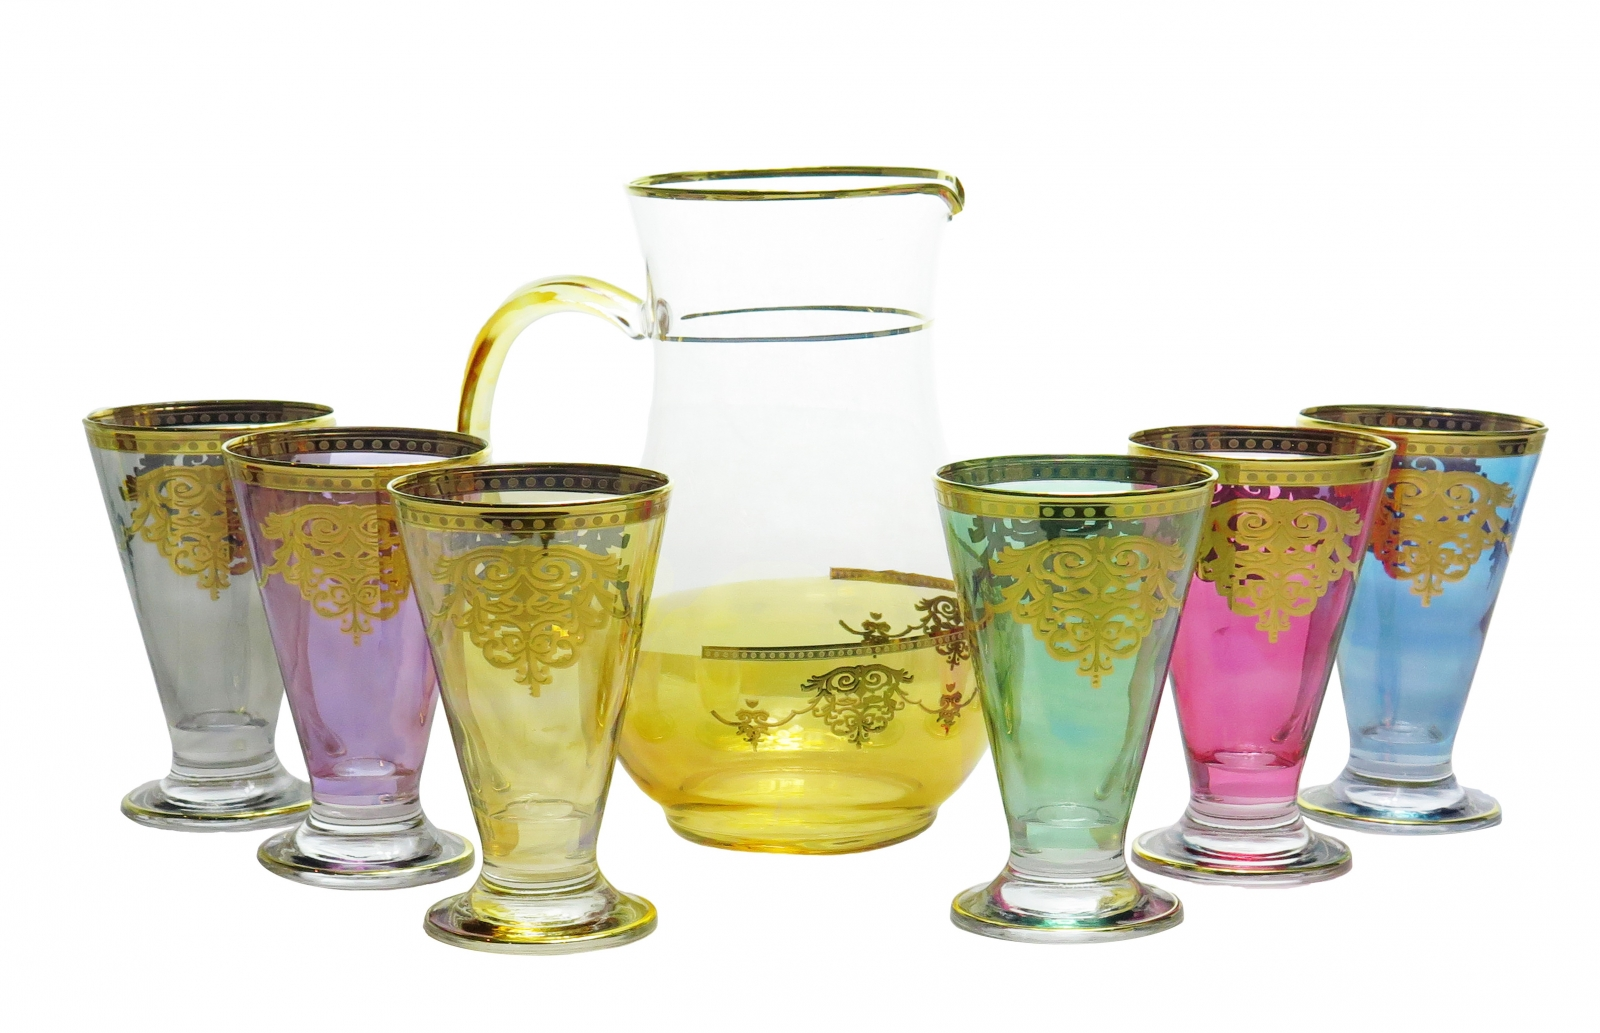 7 Piece Drinkware Set with Gold Artwork- Assorted Colors